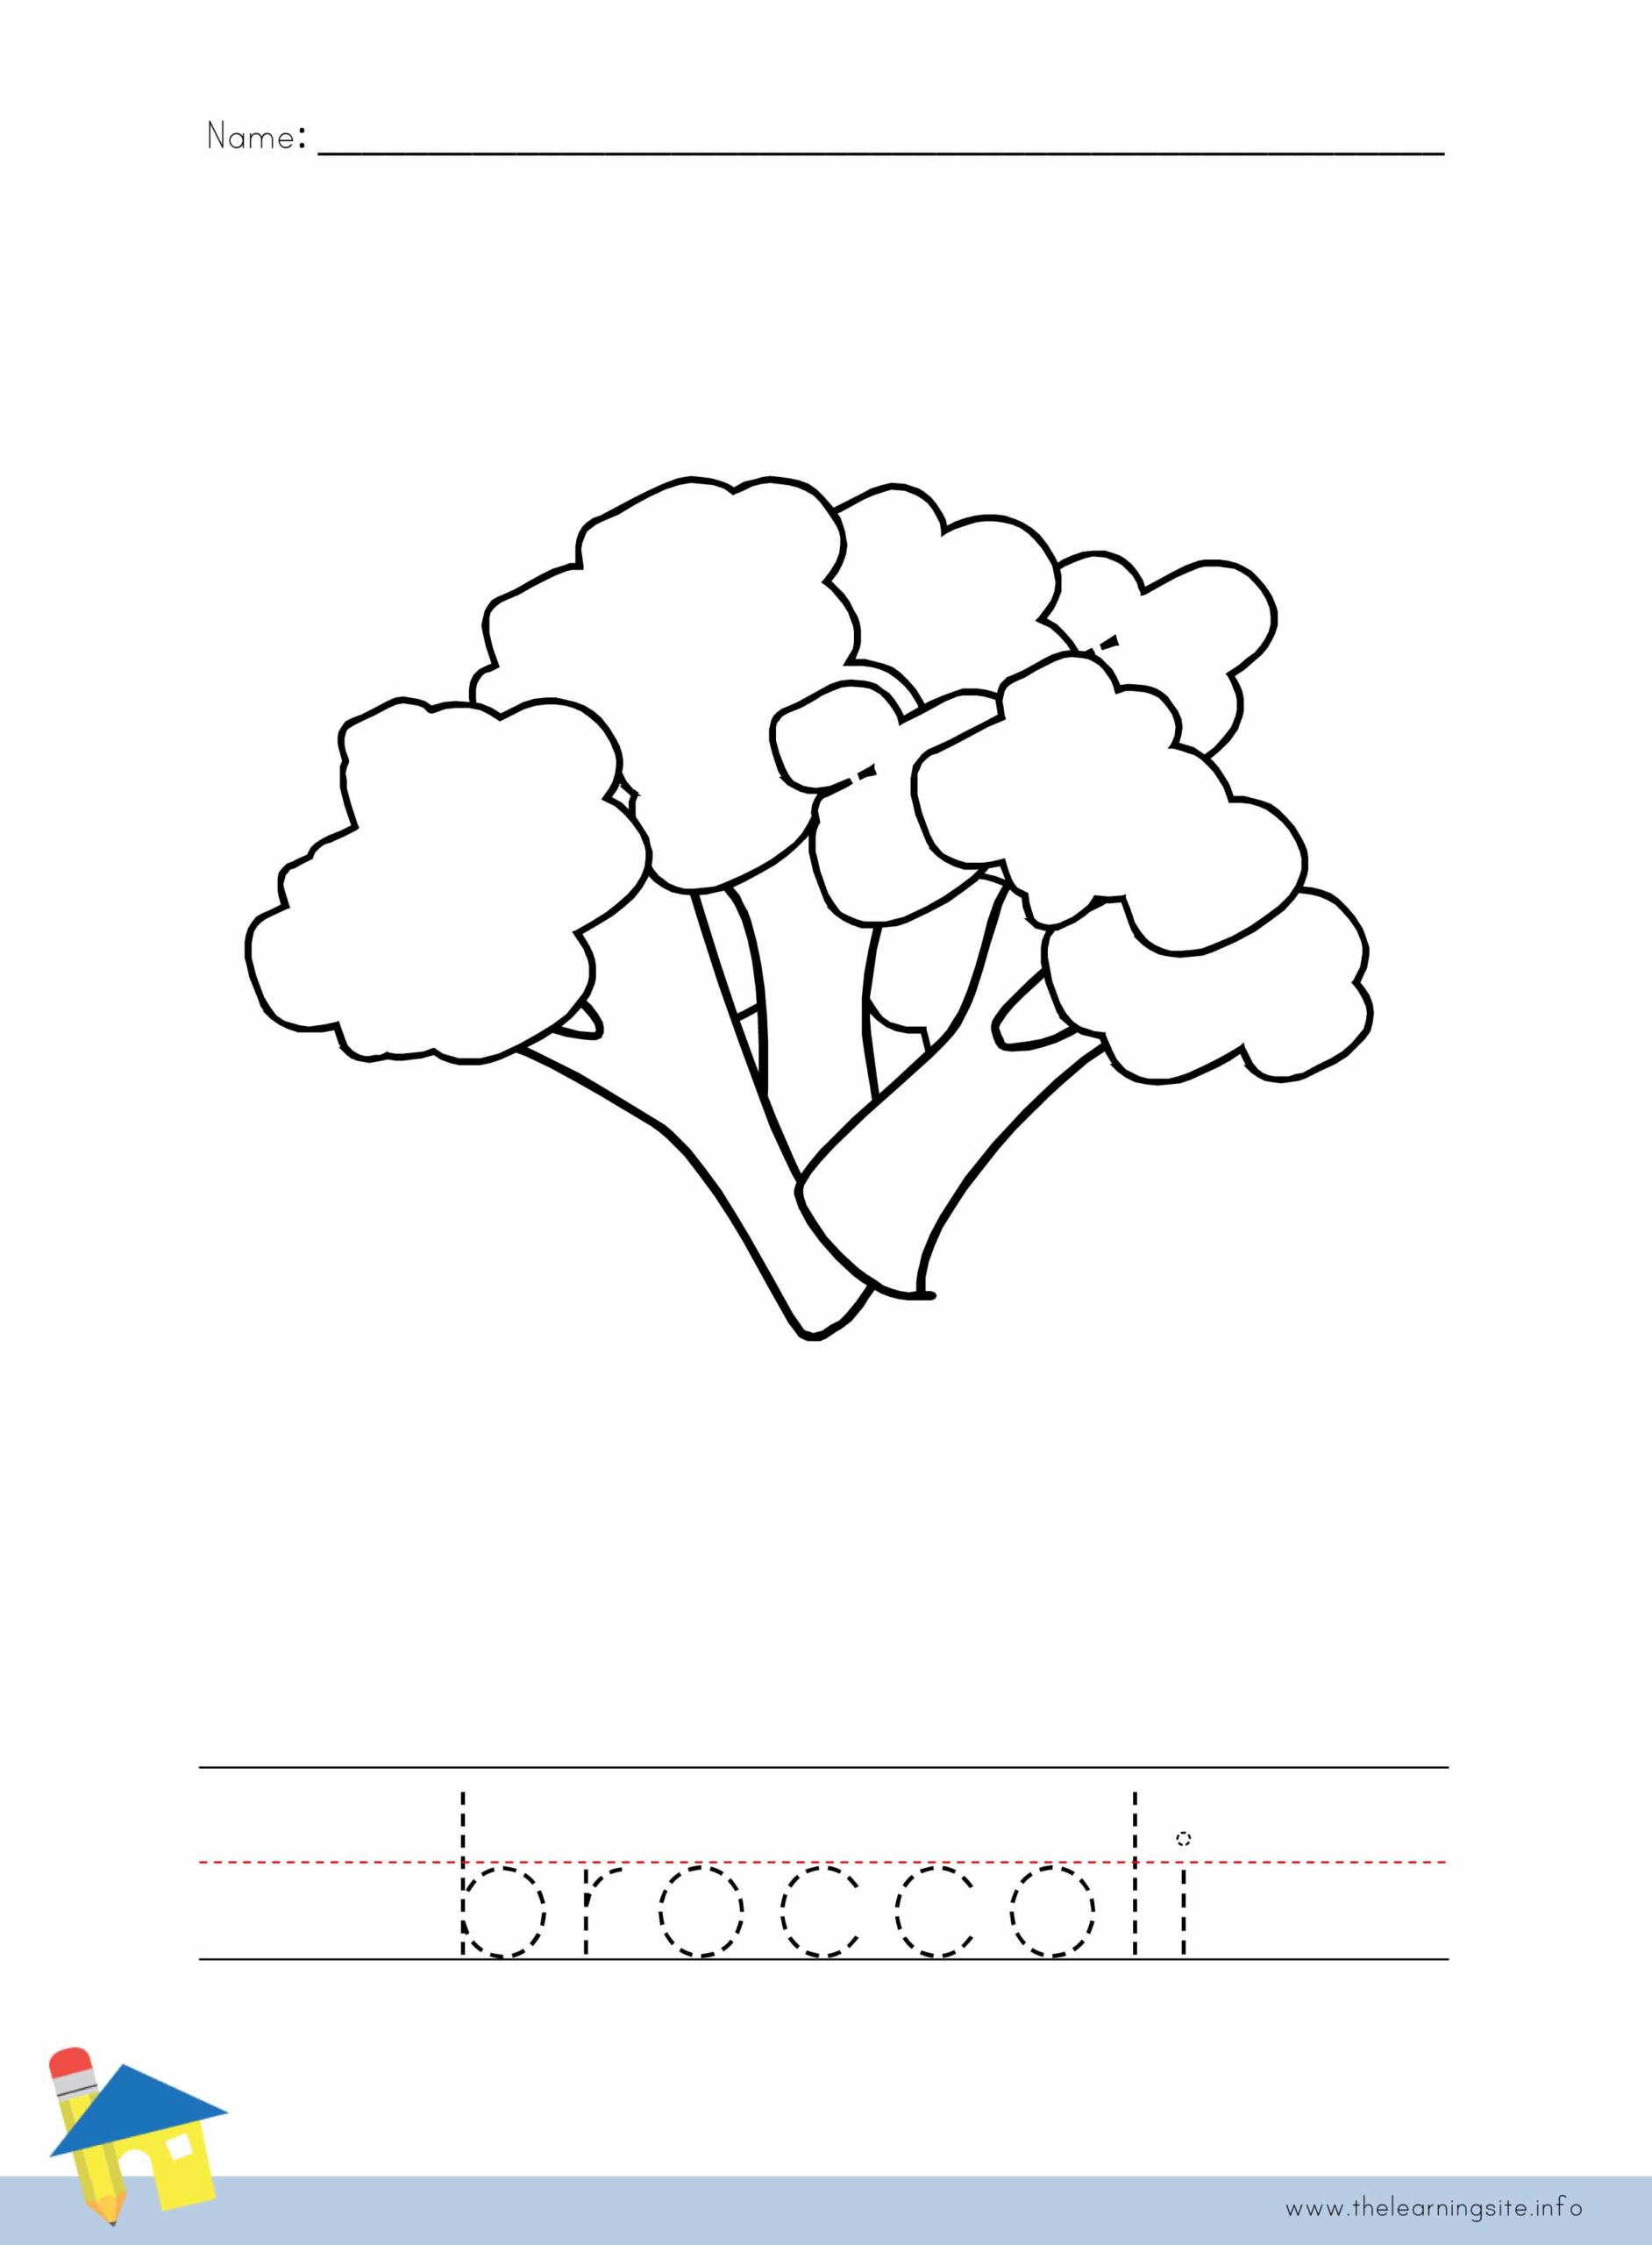 Broccoli Coloring Worksheet The Learning Site